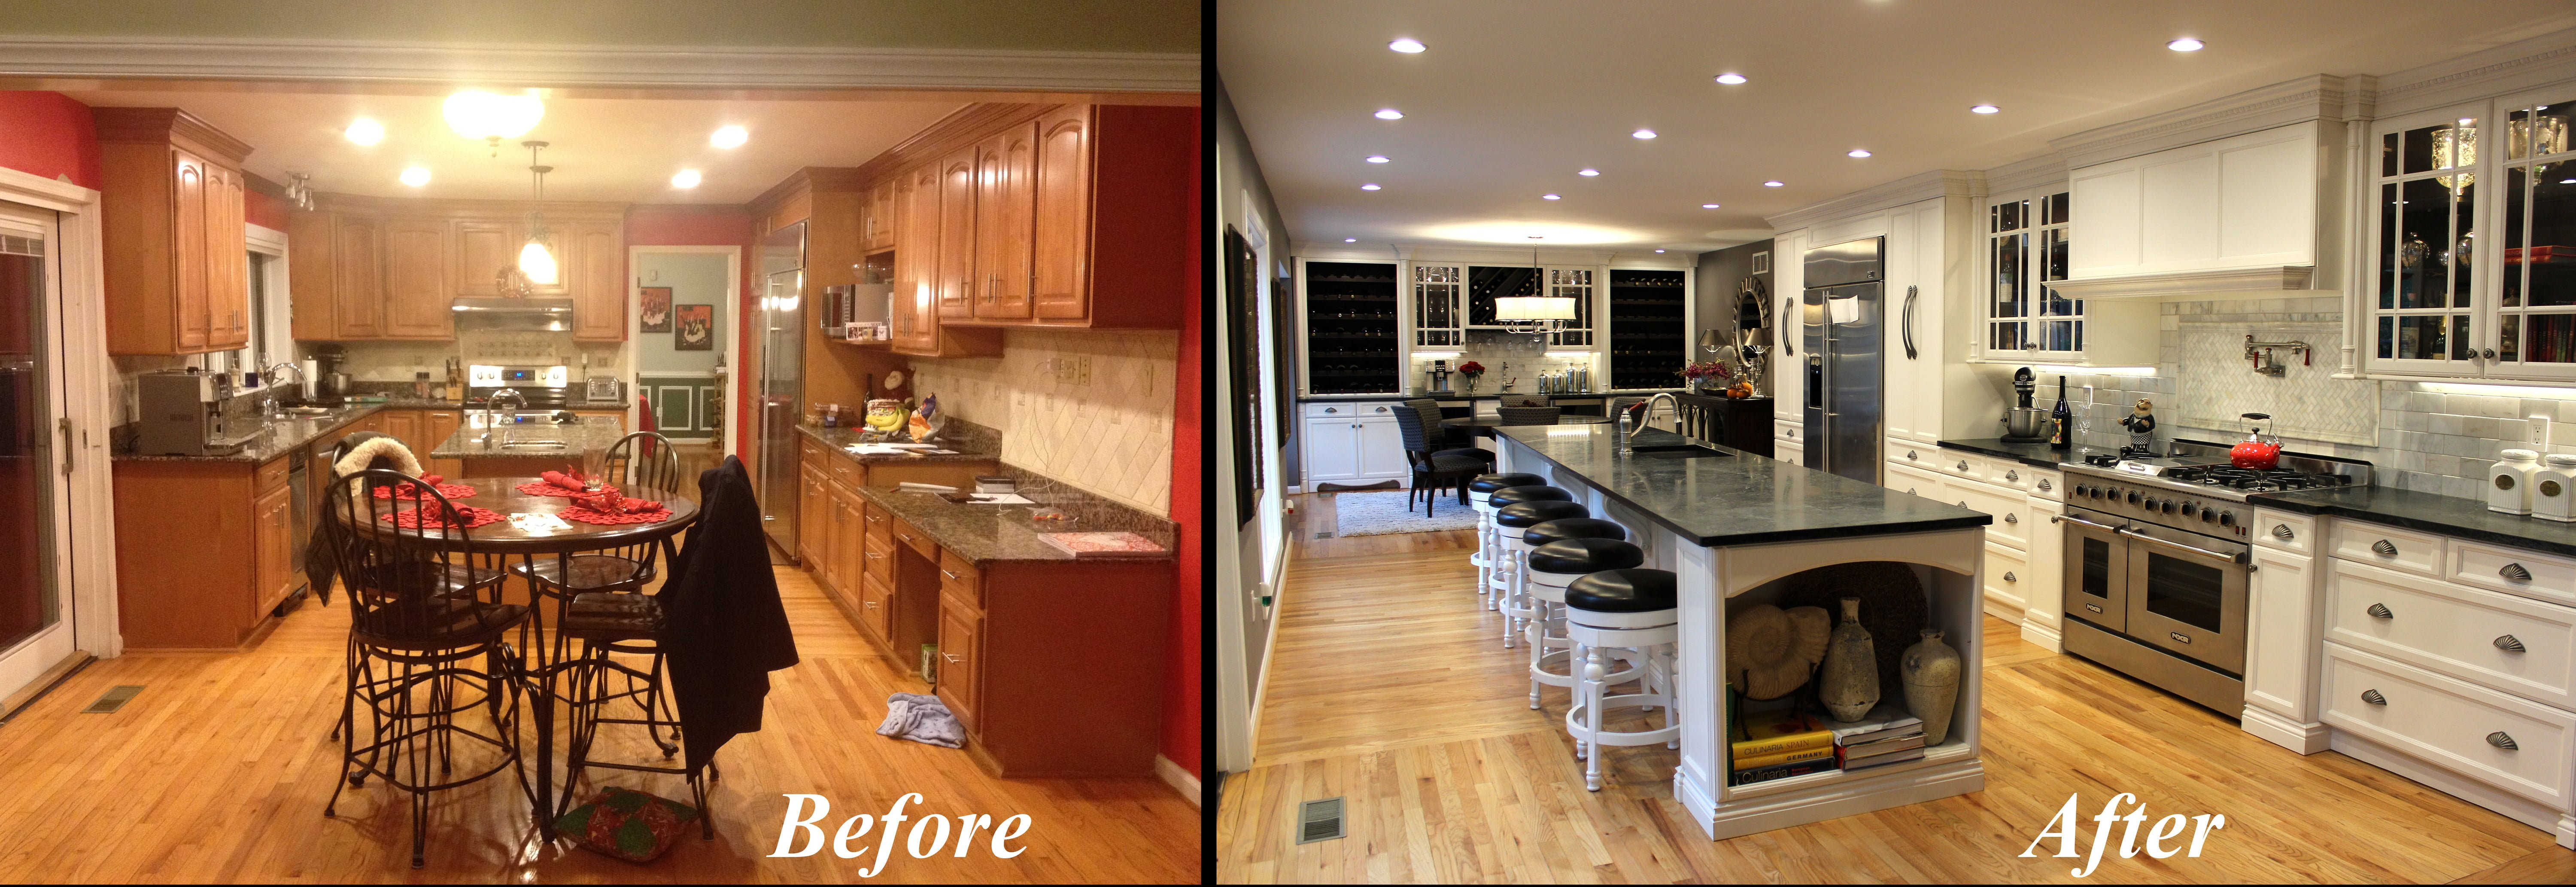 Grandior Kitchen before and after picture